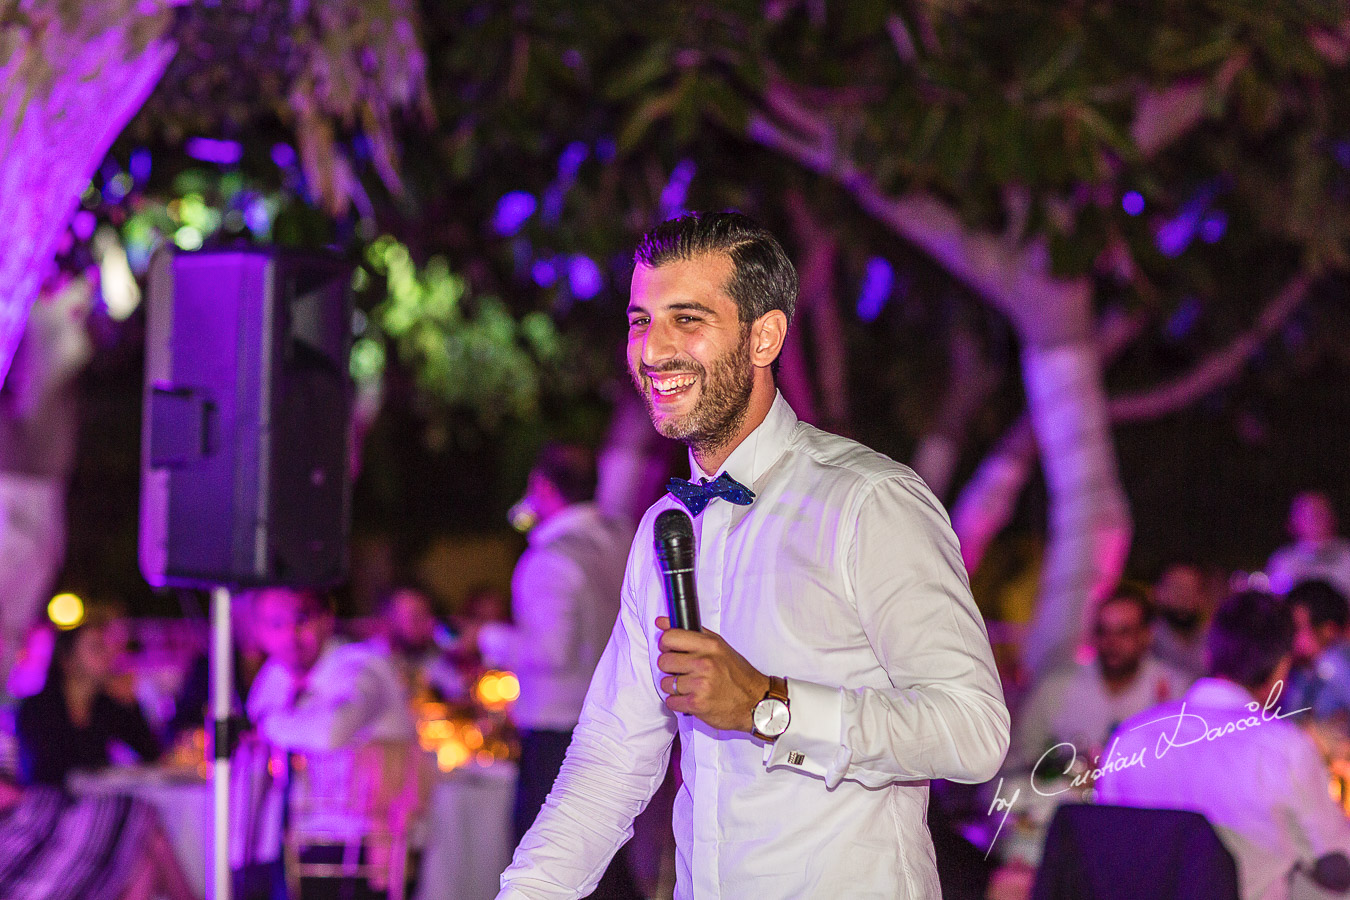 Moments captured during an elegant and romantic wedding at Elias Beach Hotel by Cristian Dascalu.